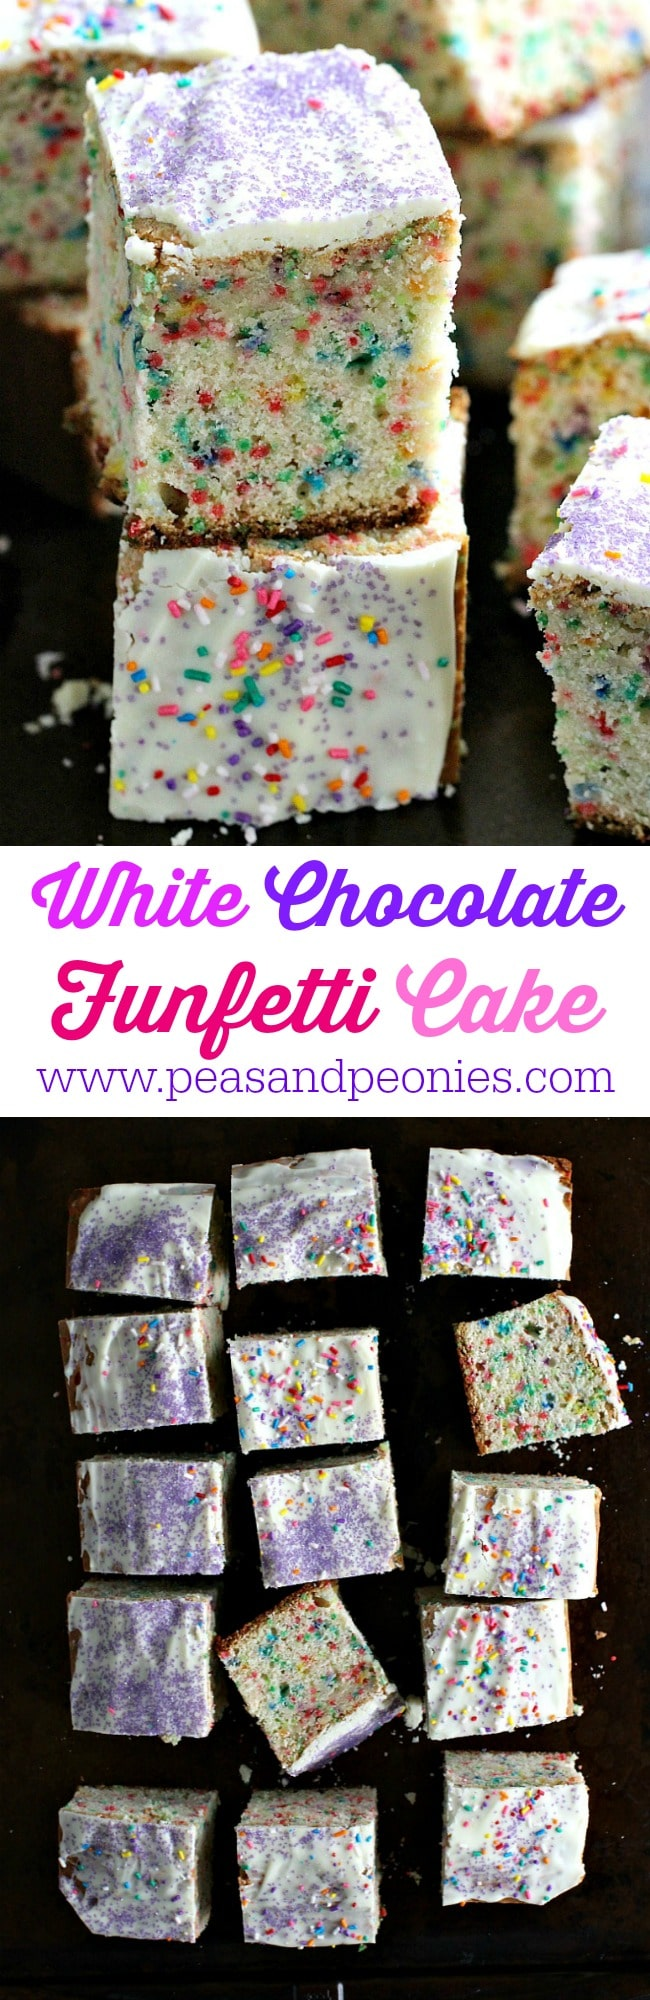 Funfetti Cake is very easy to make with just a few ingredients, loaded with sprinkles and topped with melted white chocolate, this cake is a fun dessert.